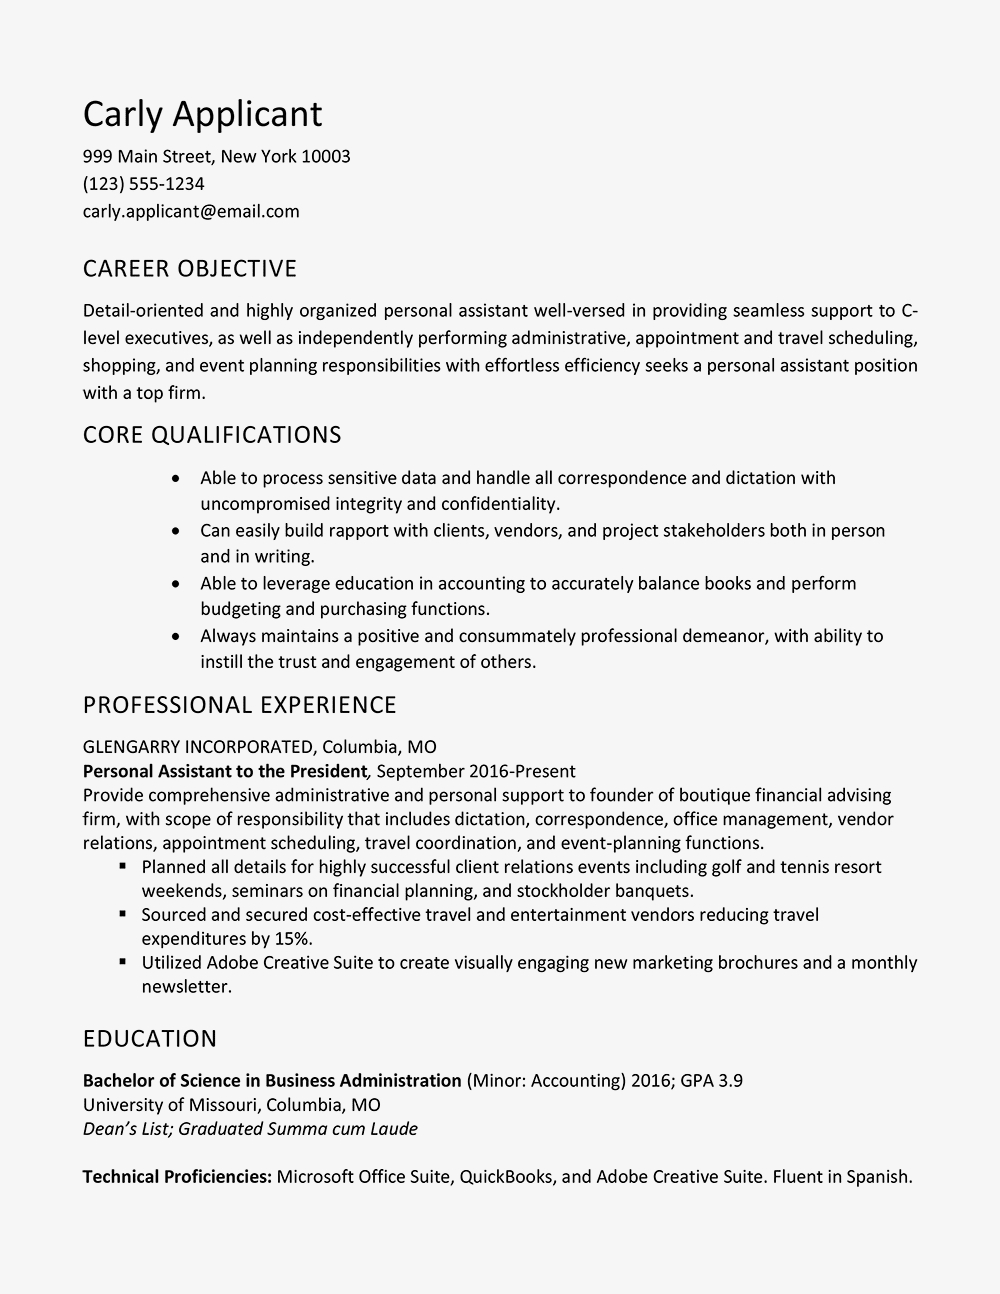 University Of Alabama Resume Template - Personal assistant Resume Sample and Skills List